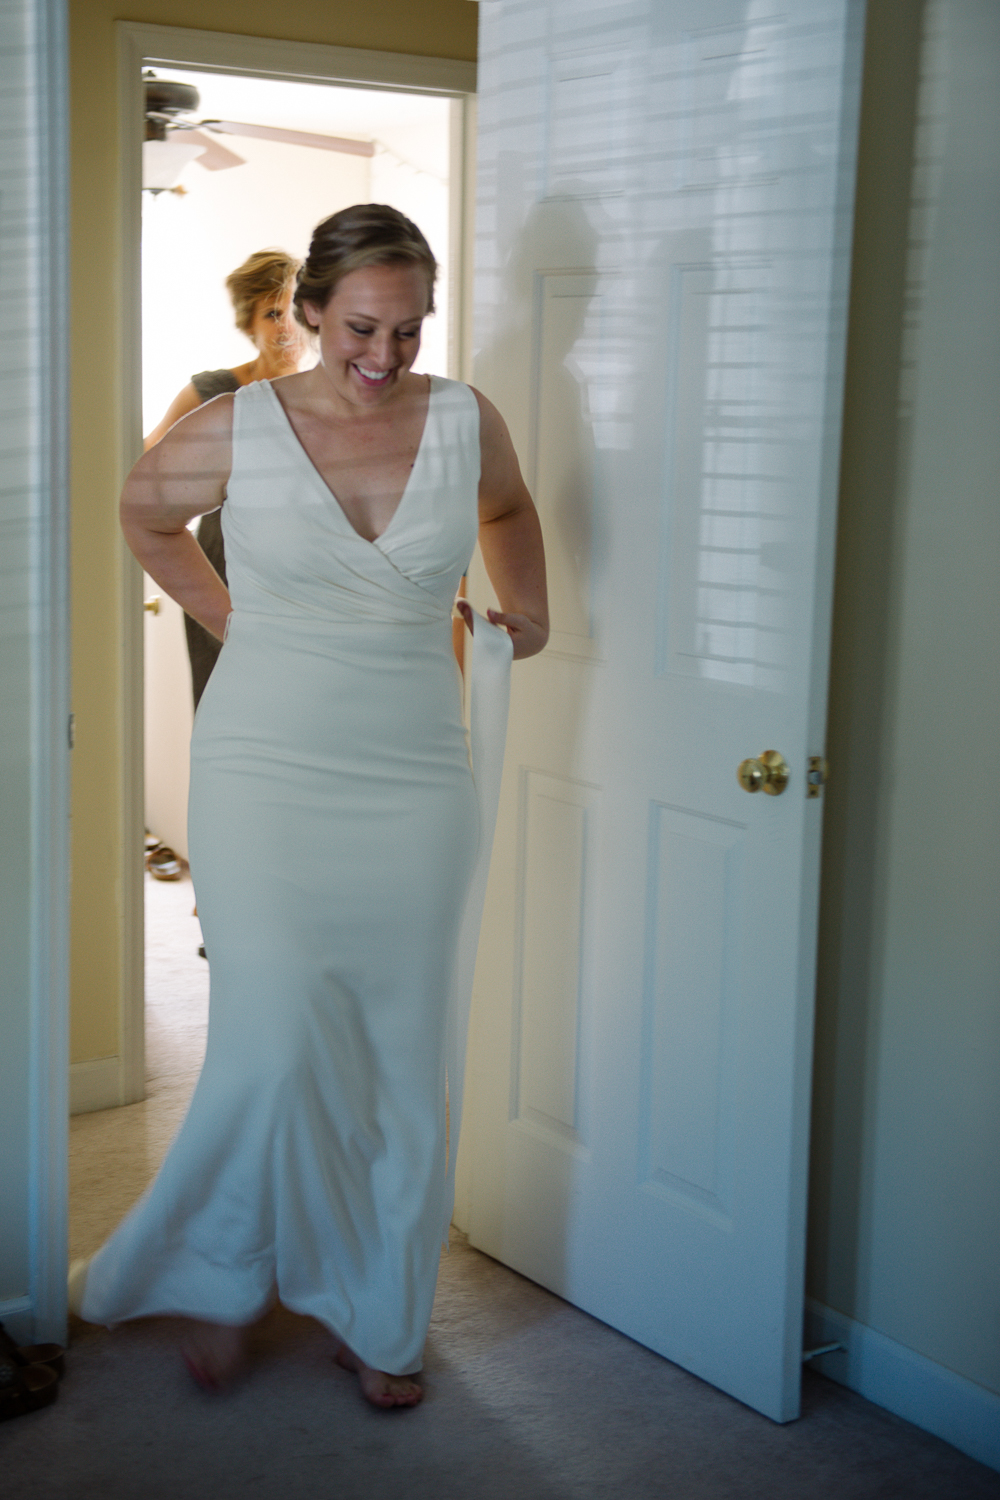 Fancy Zoot Suit Wedding Dresses Photos - All Wedding Dresses ...